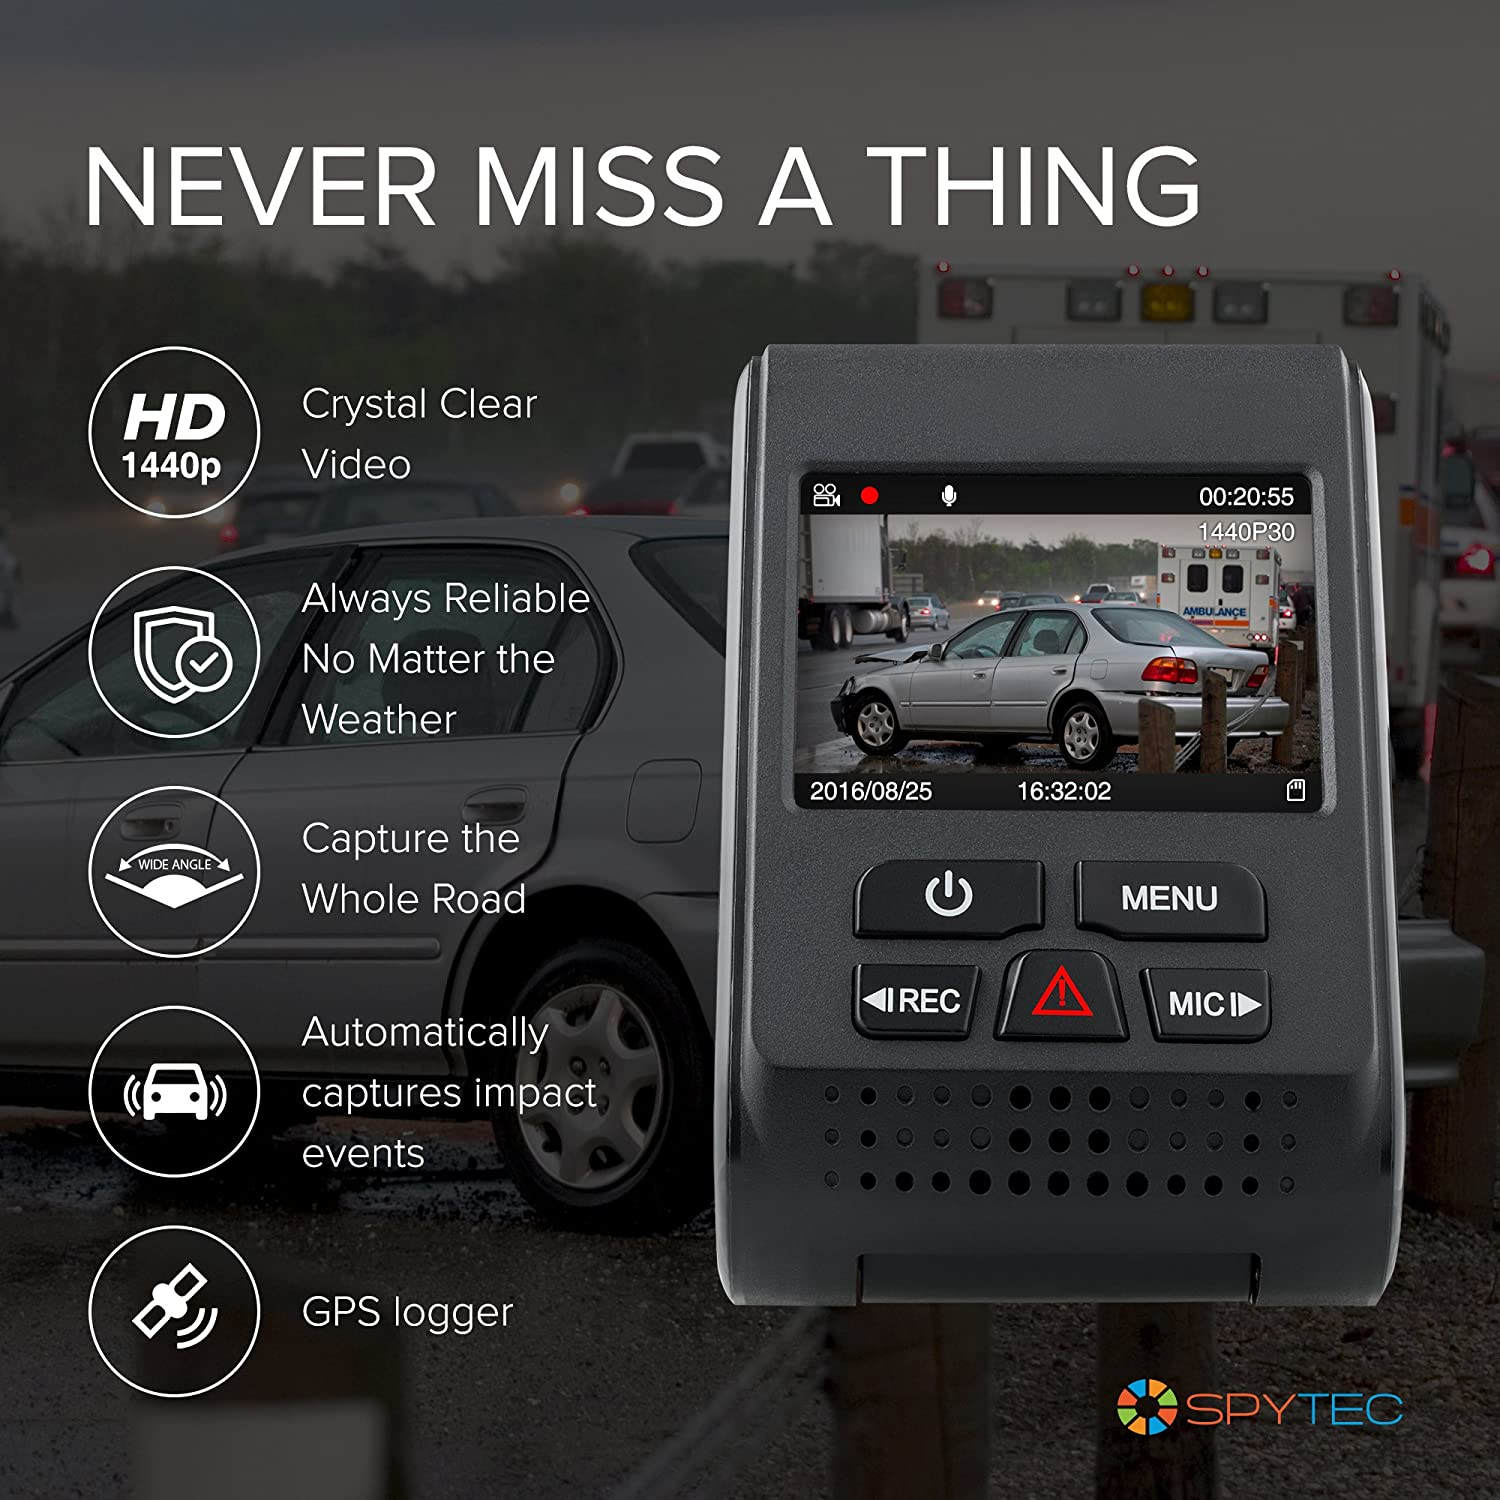 Spytec A119 Version 2 Car Dash 60 Fps 1440p Camera With Profile Blade Fuse Tap Holder Add A Circuit Line Japanese Ebay Gps Logger Mount G Sensor Wide Angle Lens And Low Light Recording Photo